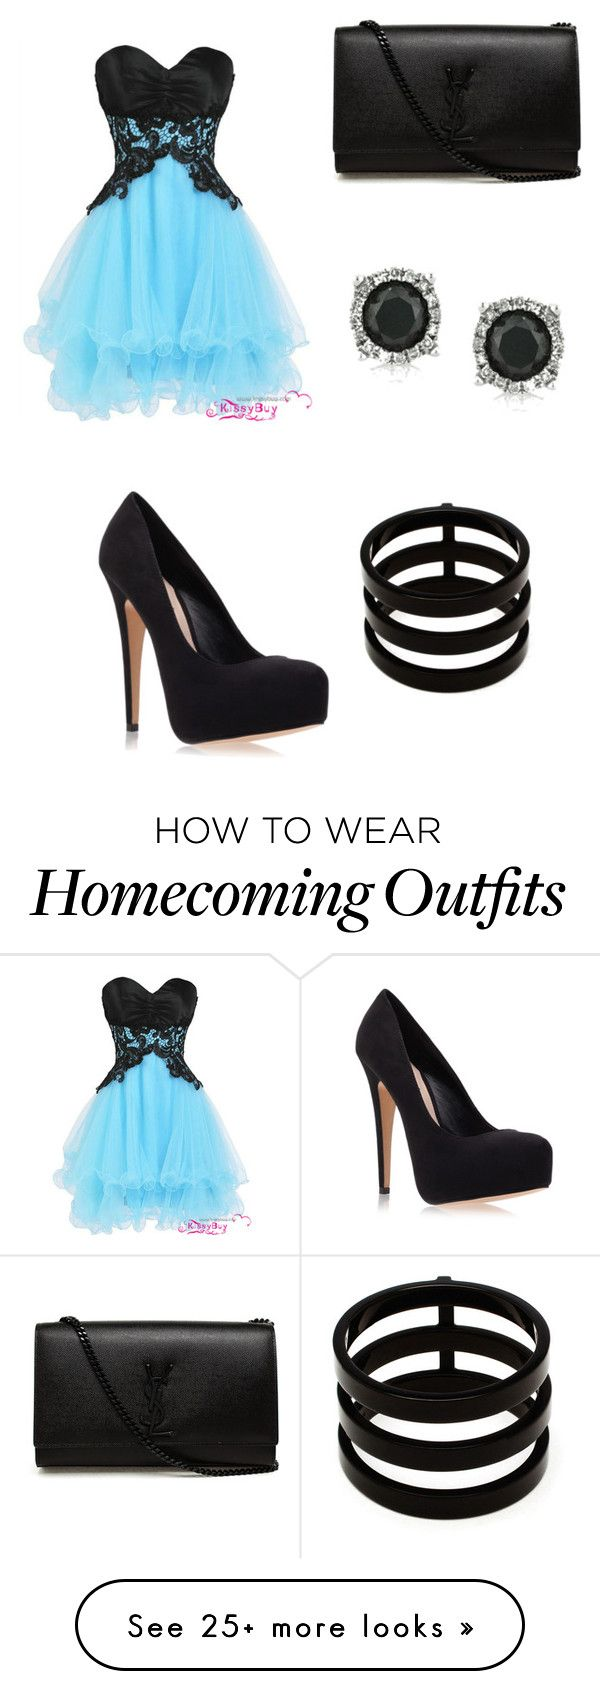 """Short Homecoming dress"" by theycallmepoopey on Polyvore featuring Carvela Kurt Geiger, Yves Saint Laurent, Mark Broumand and Repossi"